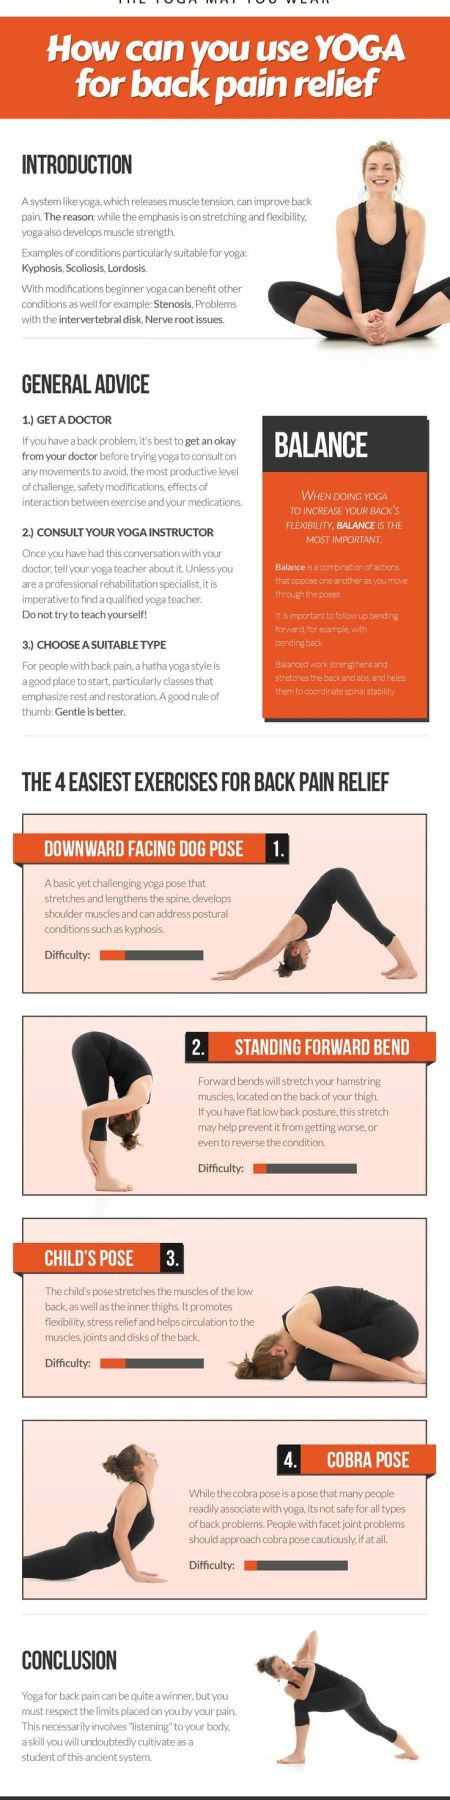 Yoga Relieves Back Pain